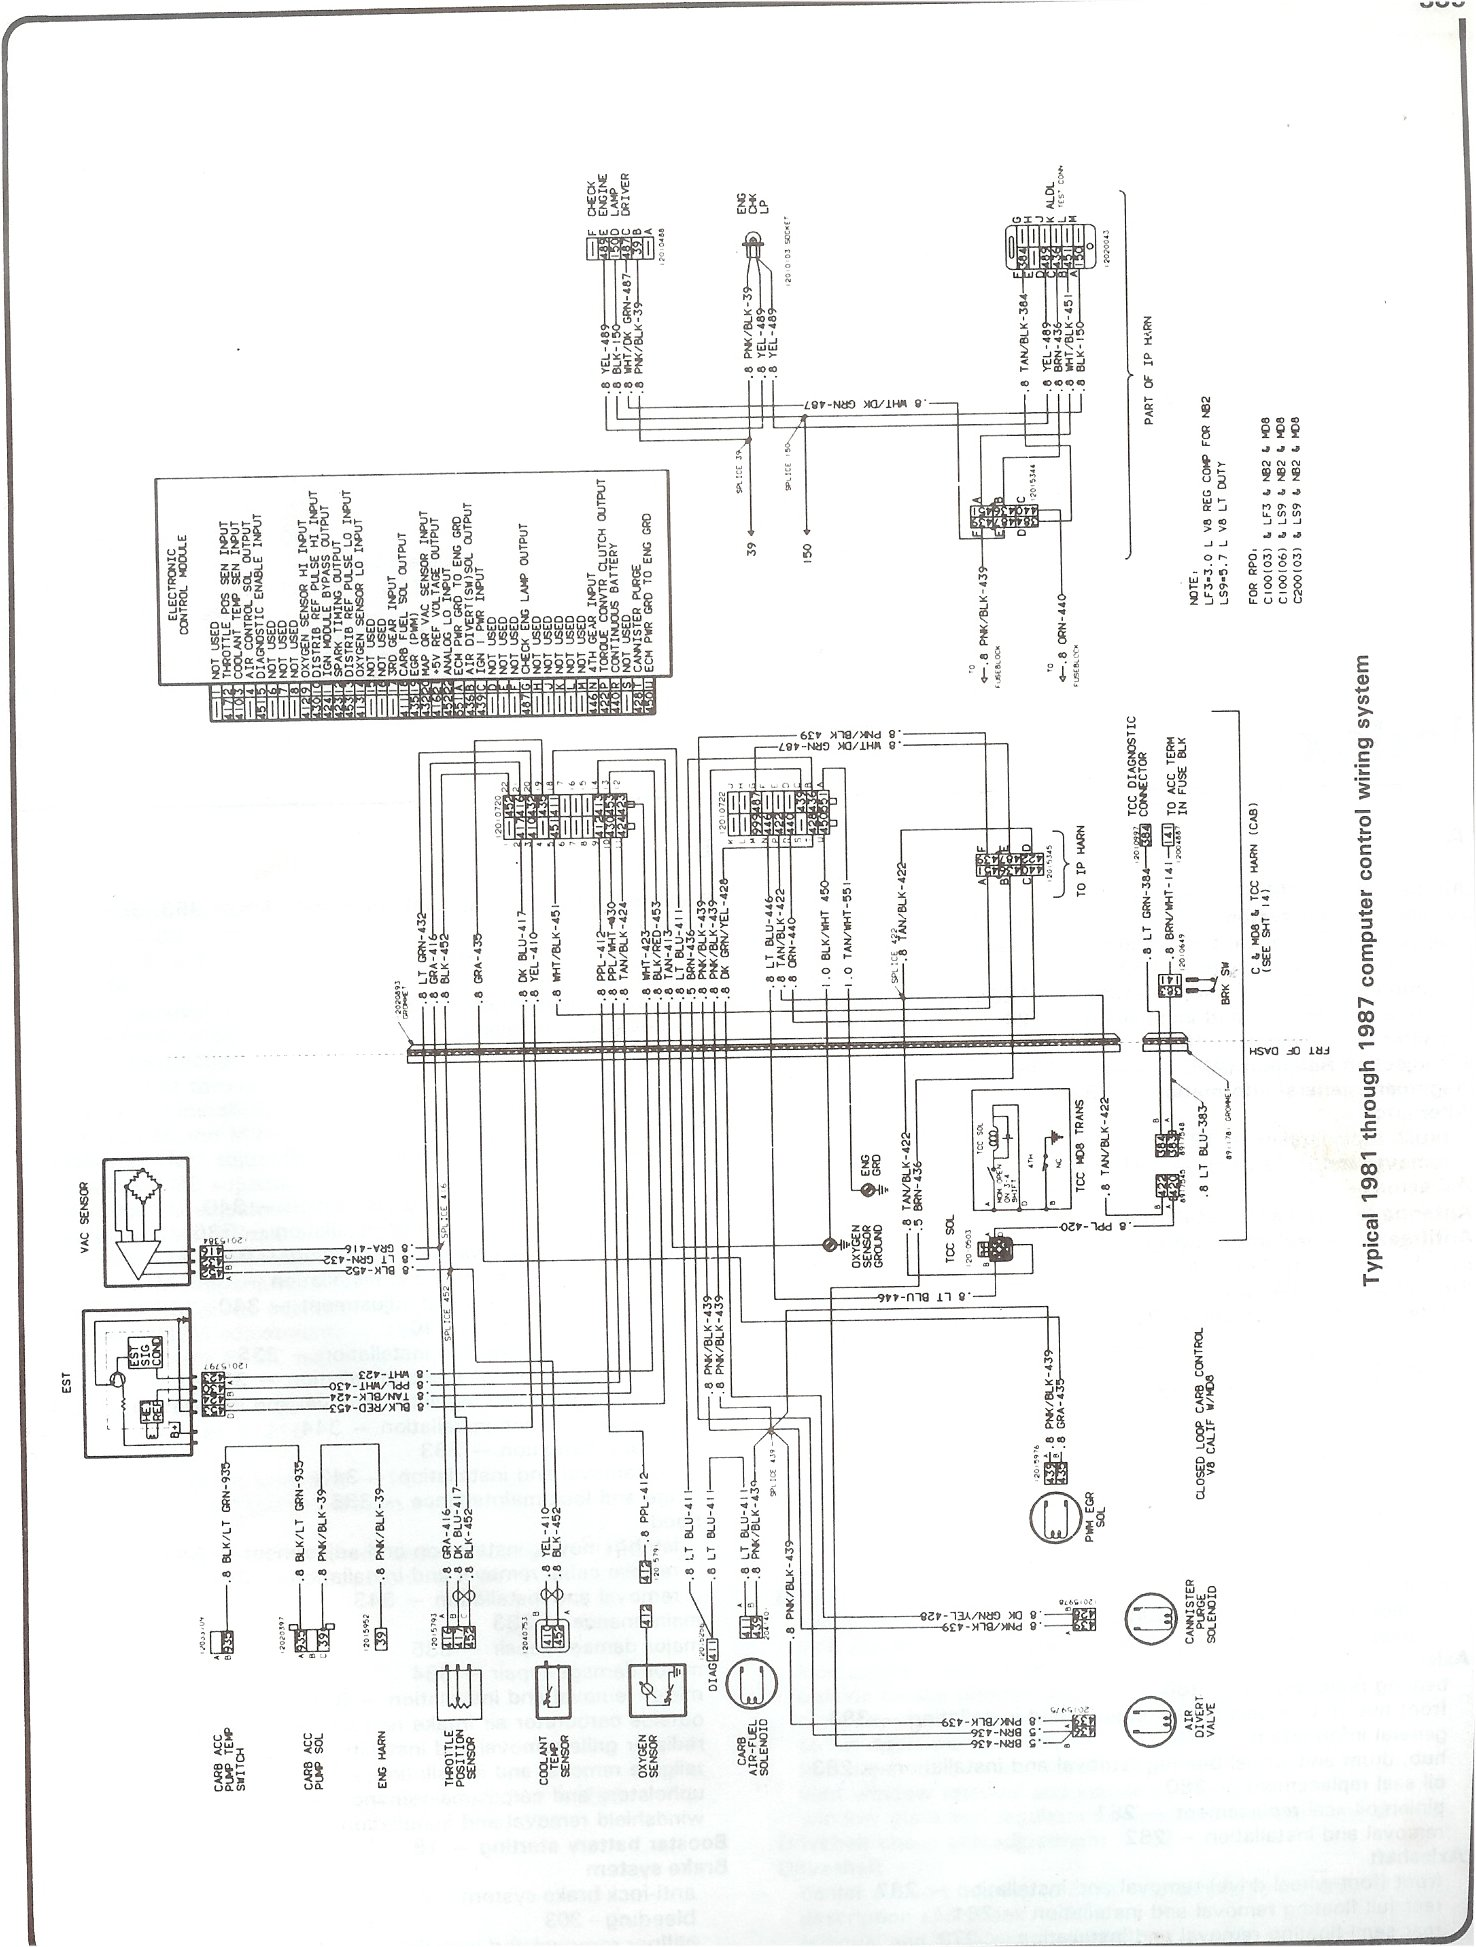 hight resolution of 82 buick regal wiring diagram wiring library1975 chevy p30 wiring diagram data wiring schema 1982 chevy